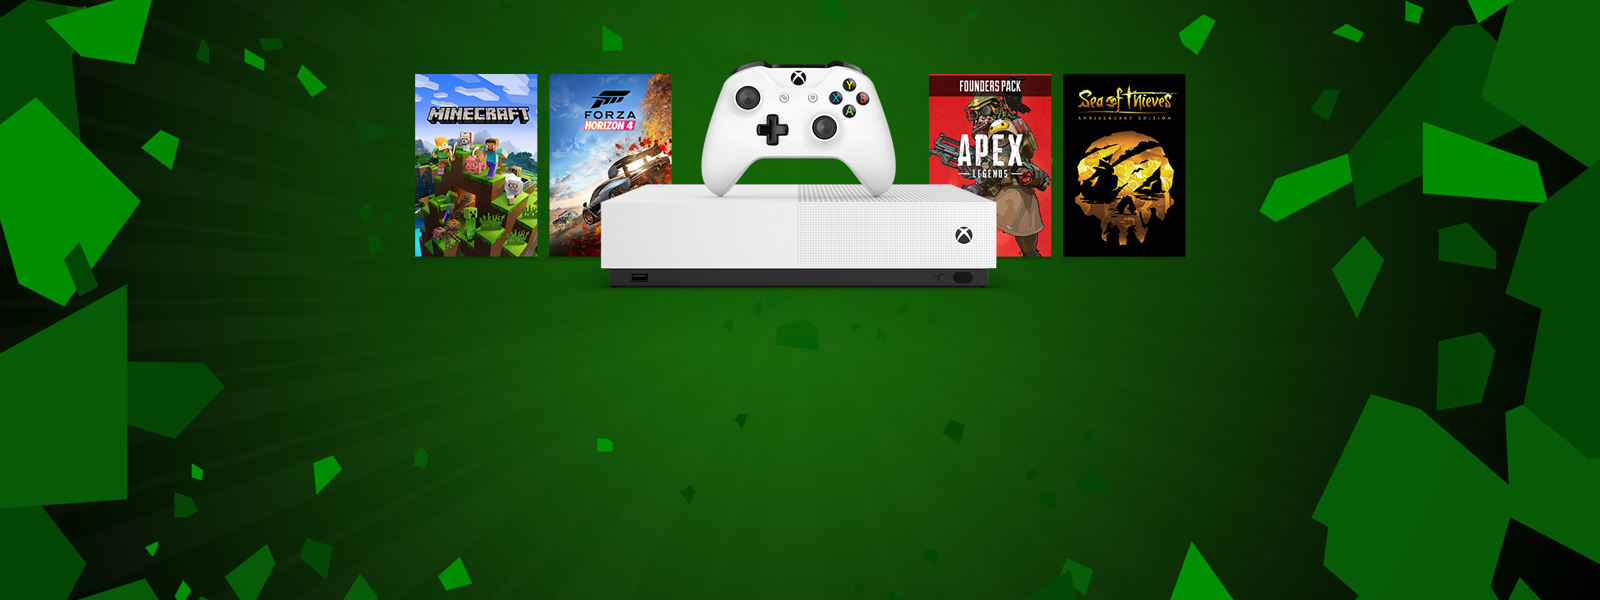 Xbox One S All-digital console and Xbox games Super Game Sale